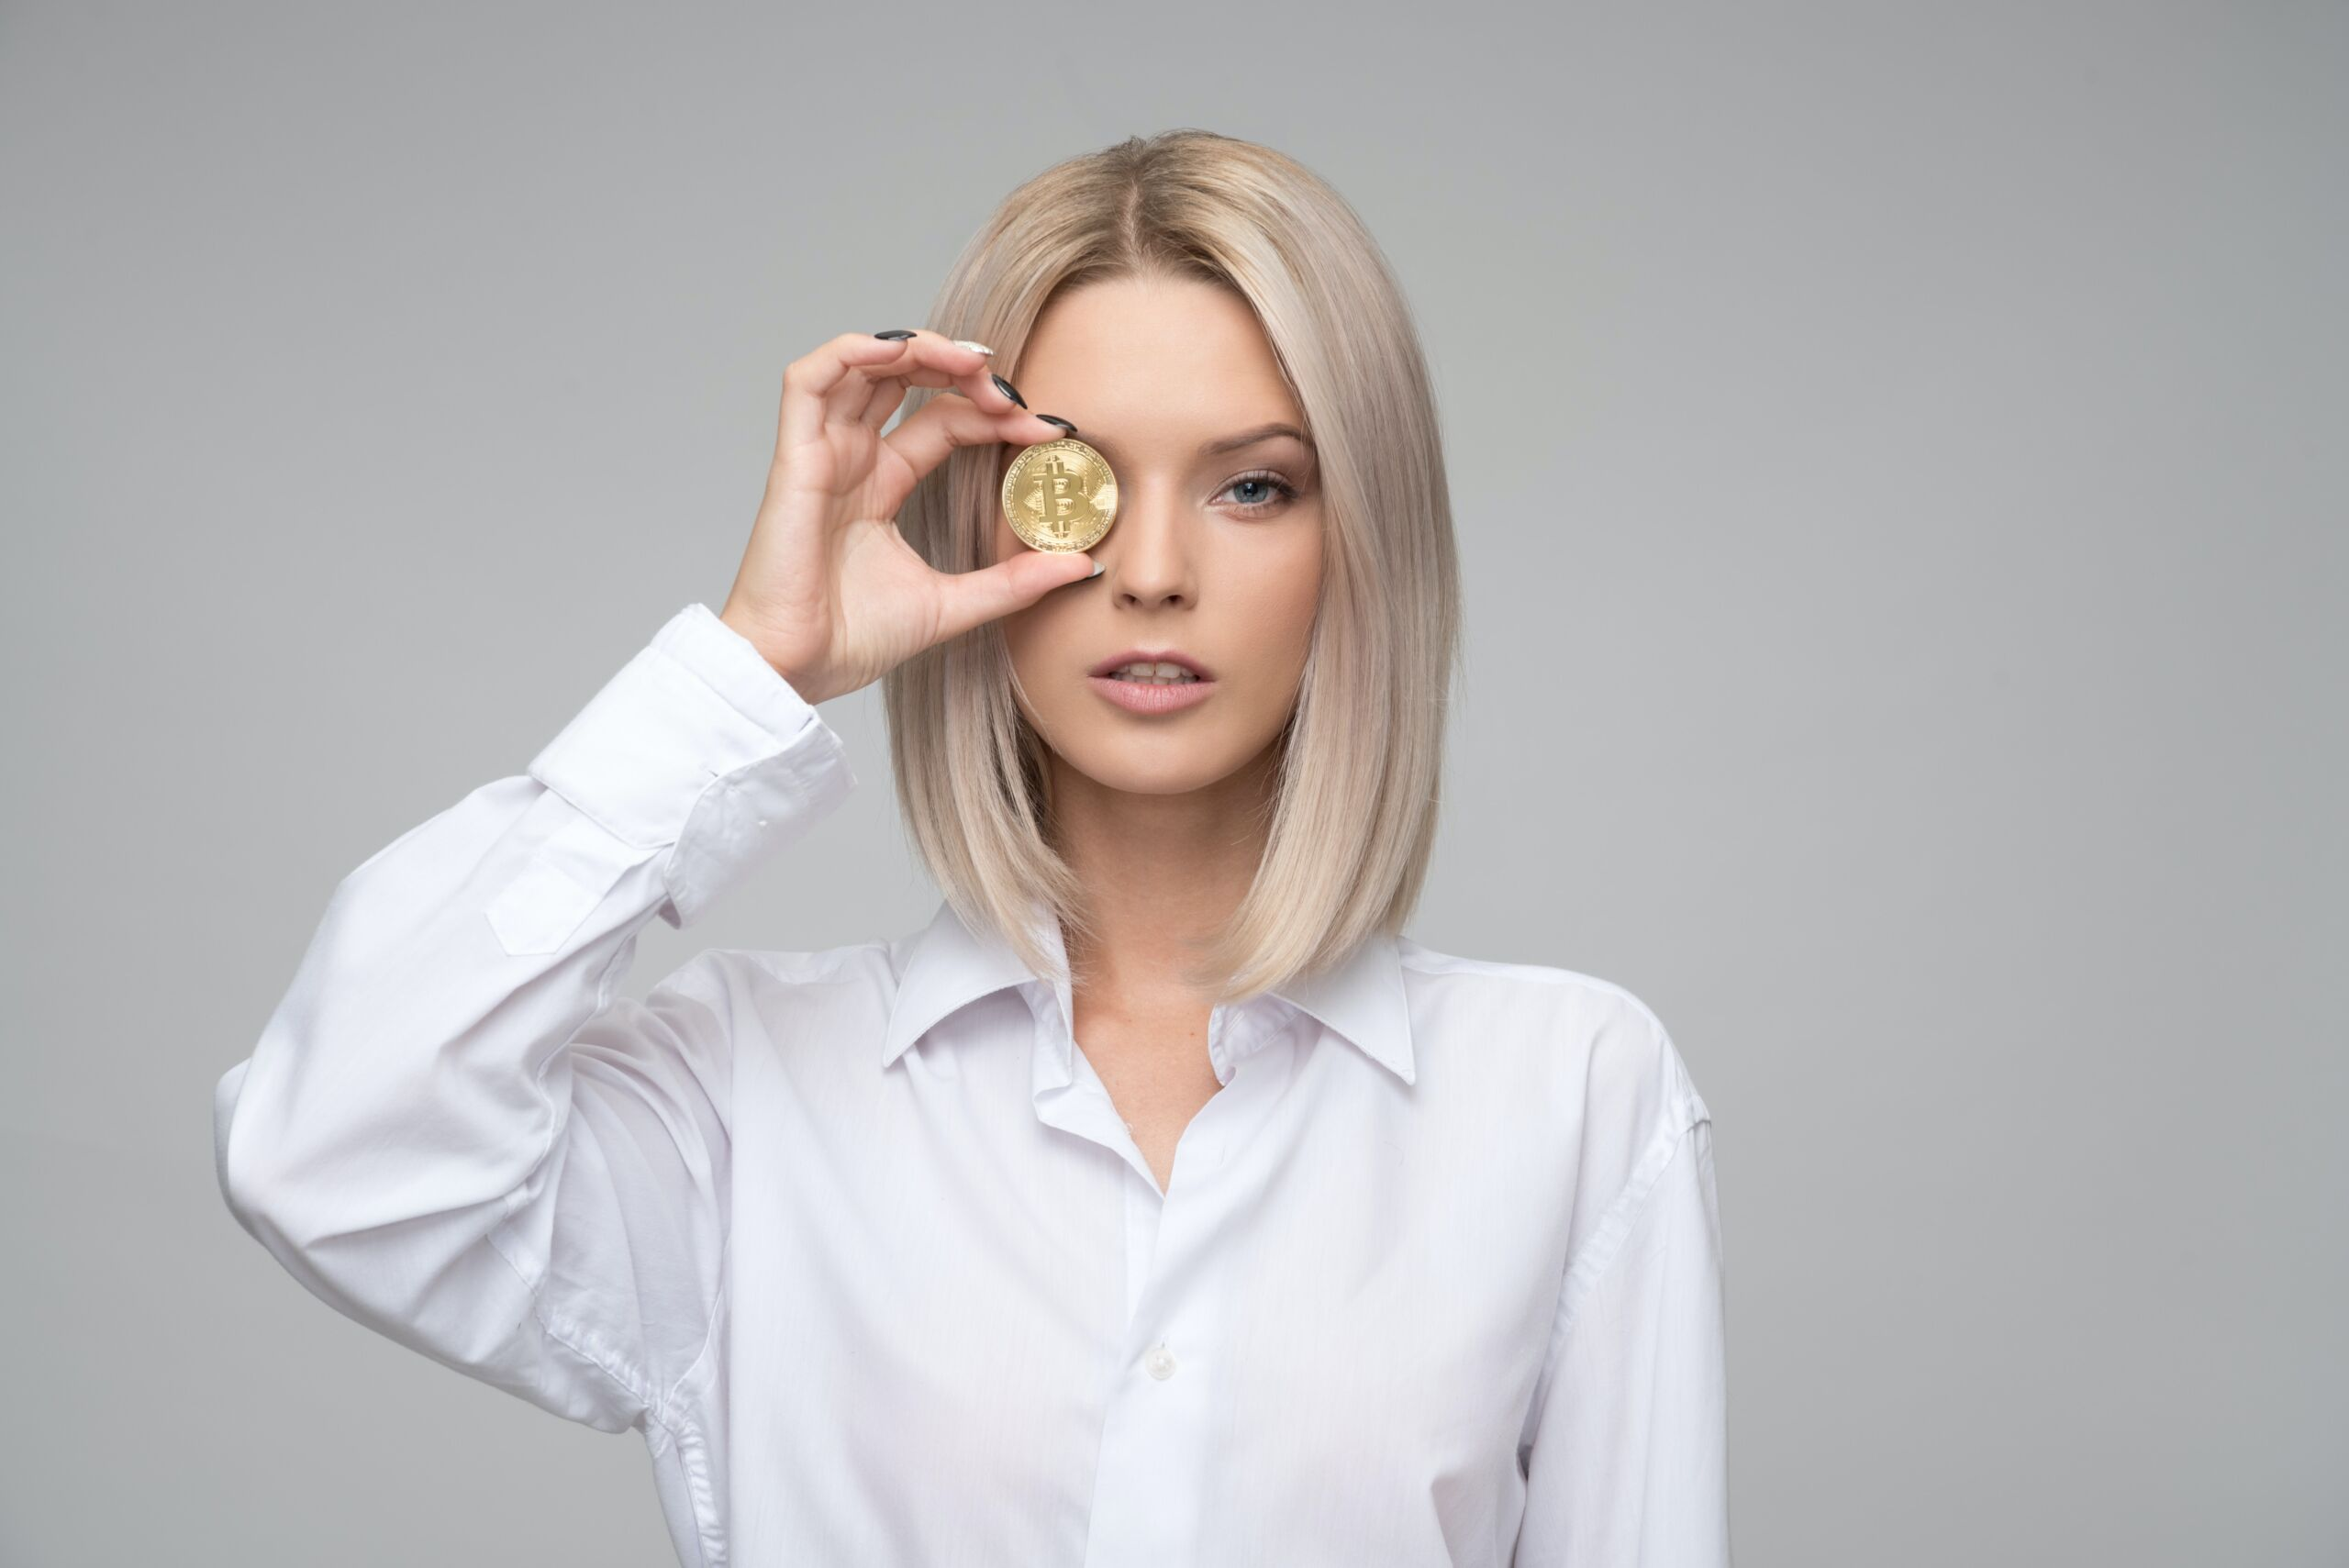 Top 5 Benefits Of Using Bitcoin In Businesses As A Payment System 2